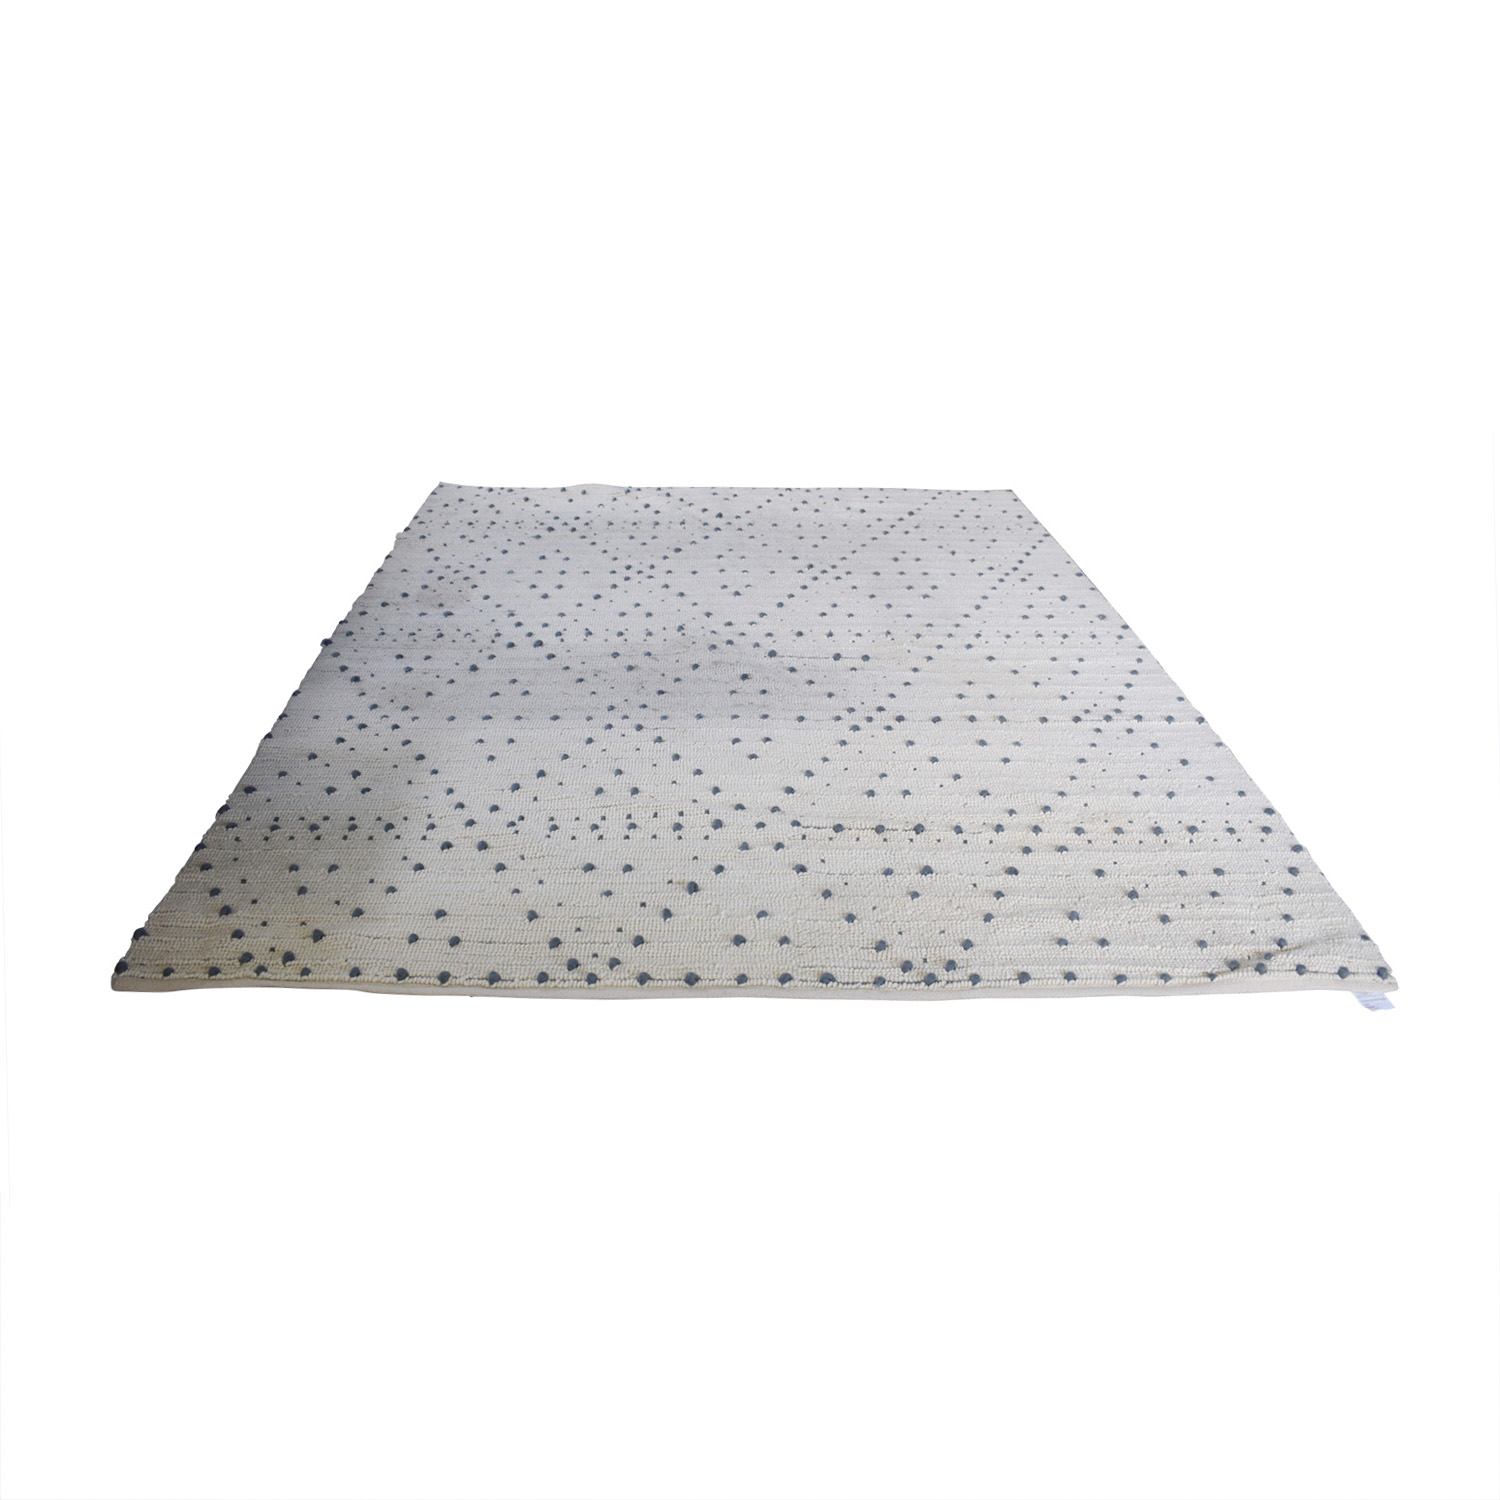 CB2 CB2 Orville White and Grey Rug